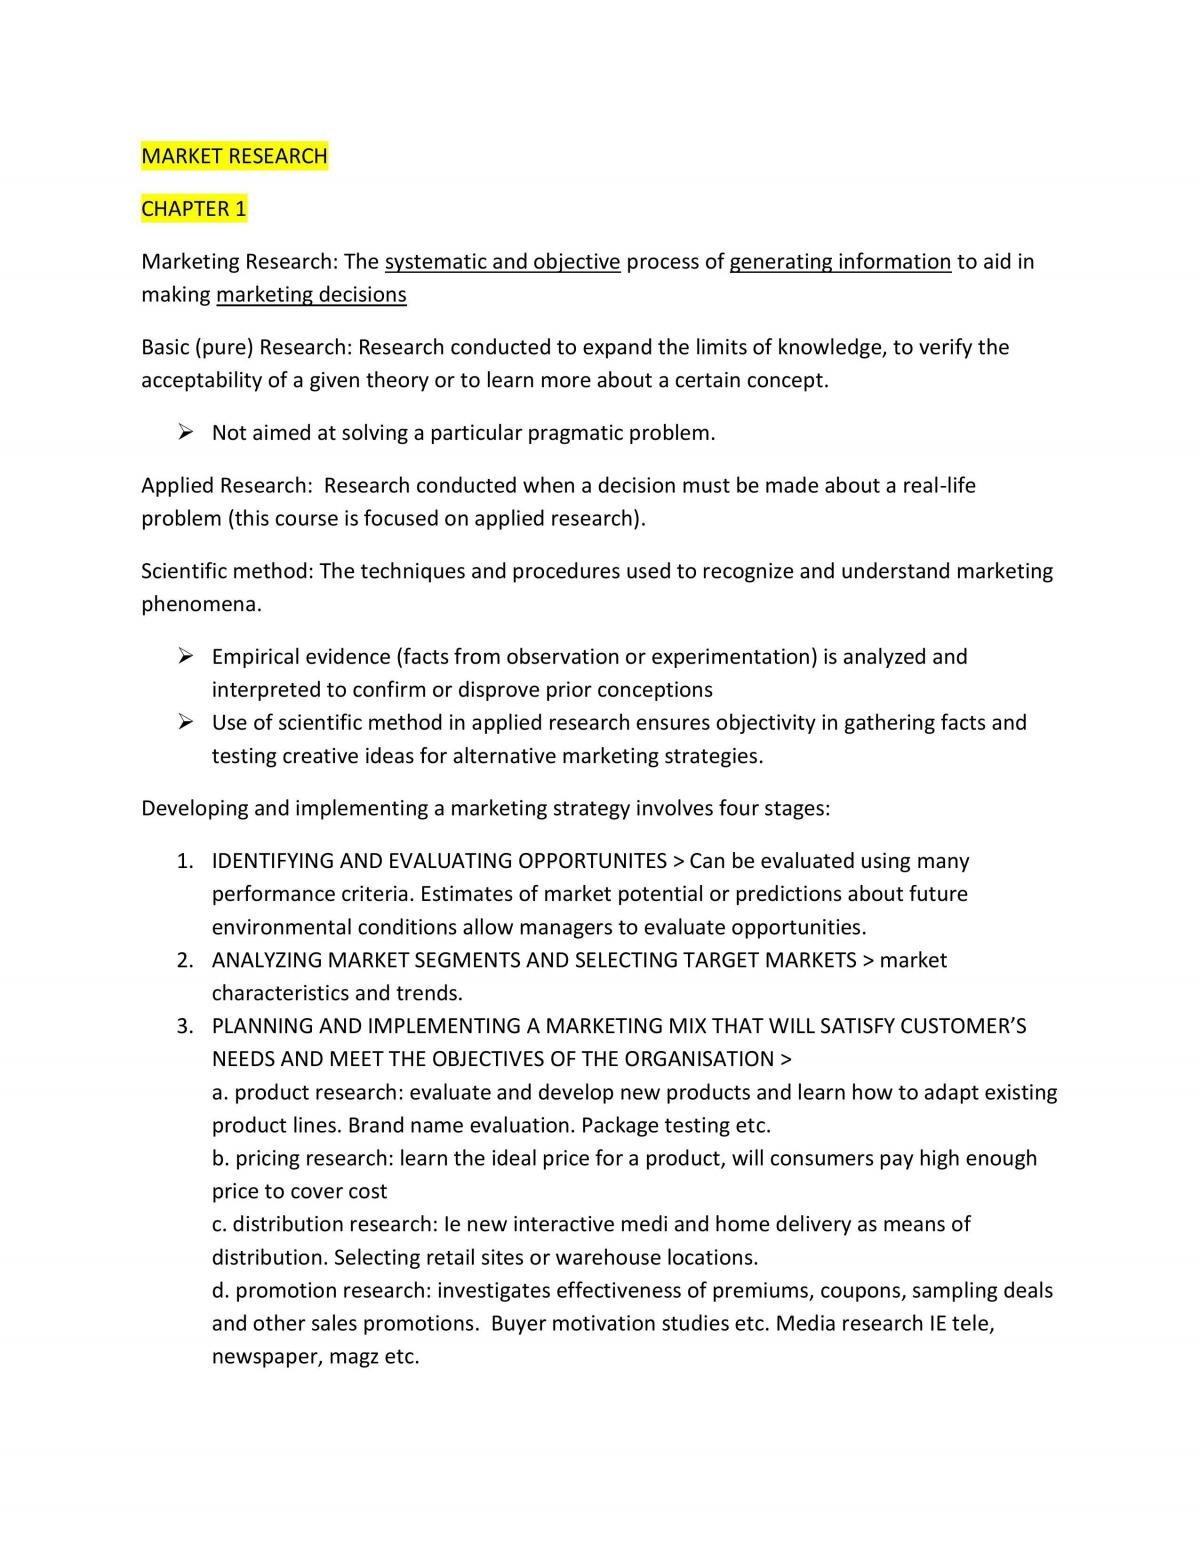 Market Research Study Notes - Page 1